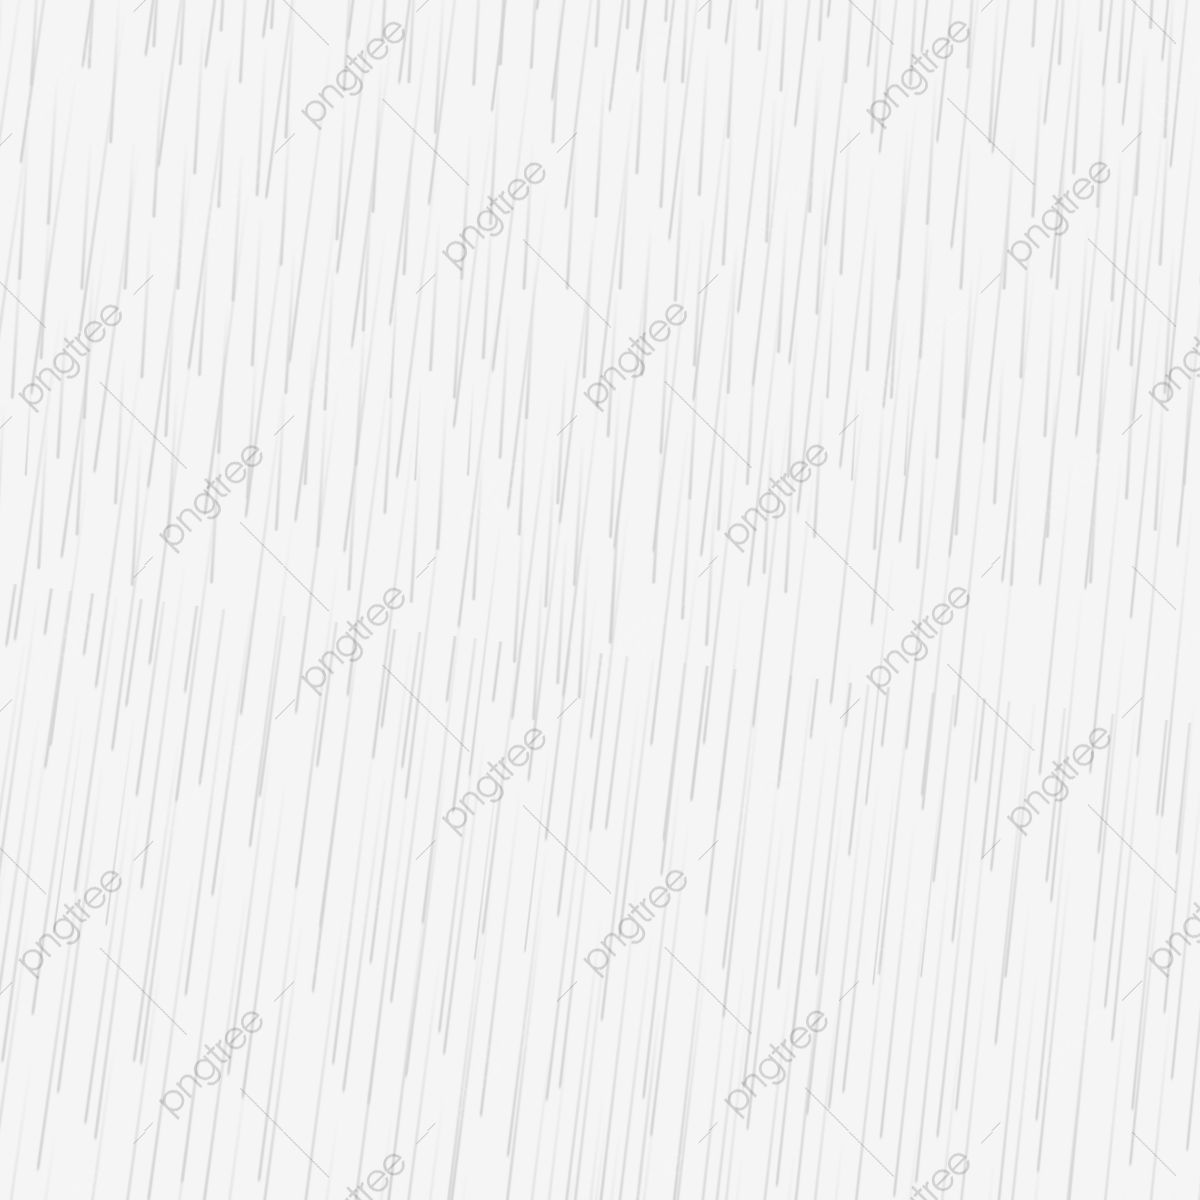 Rain Effects Png Rain Effects Psd Rain Effect Png Transparent Clipart Image And Psd File For Free Download Psd Rain Png